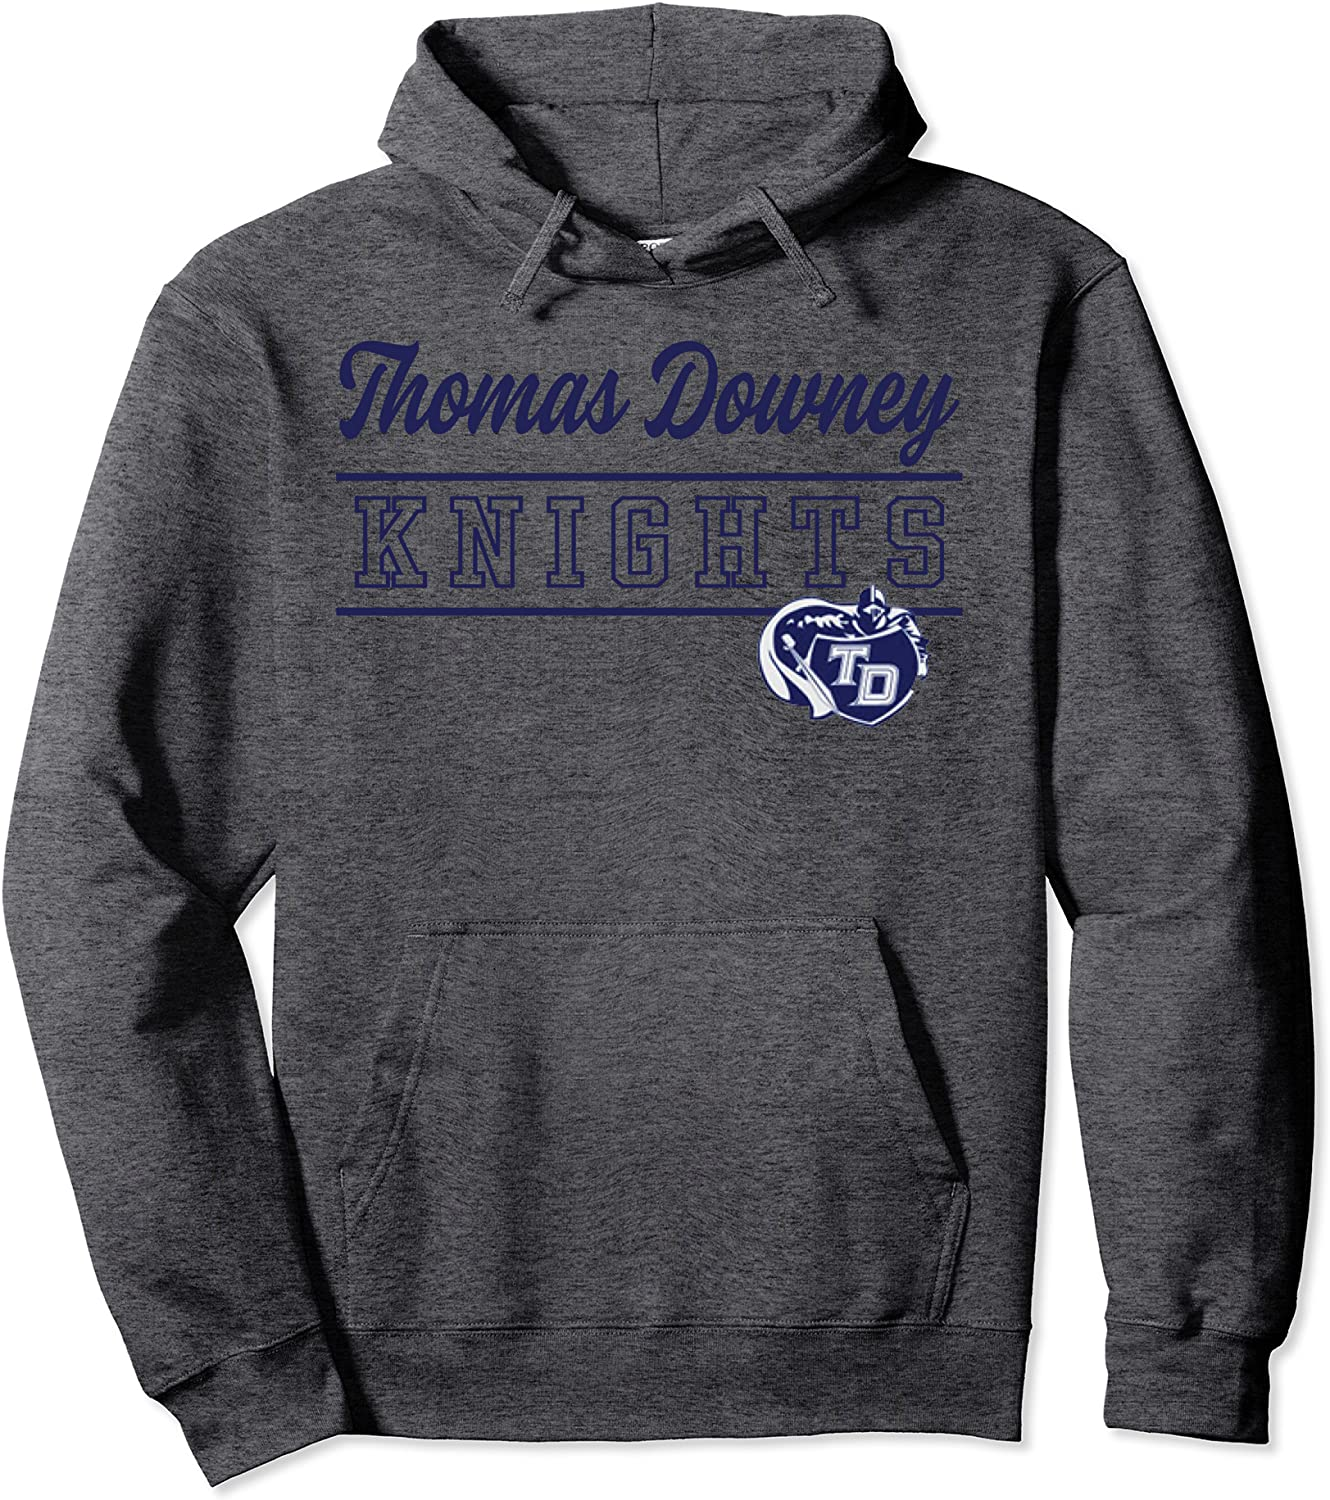 Thomas Downey 55% OFF High School C4 Hoodie service Pullover Knights